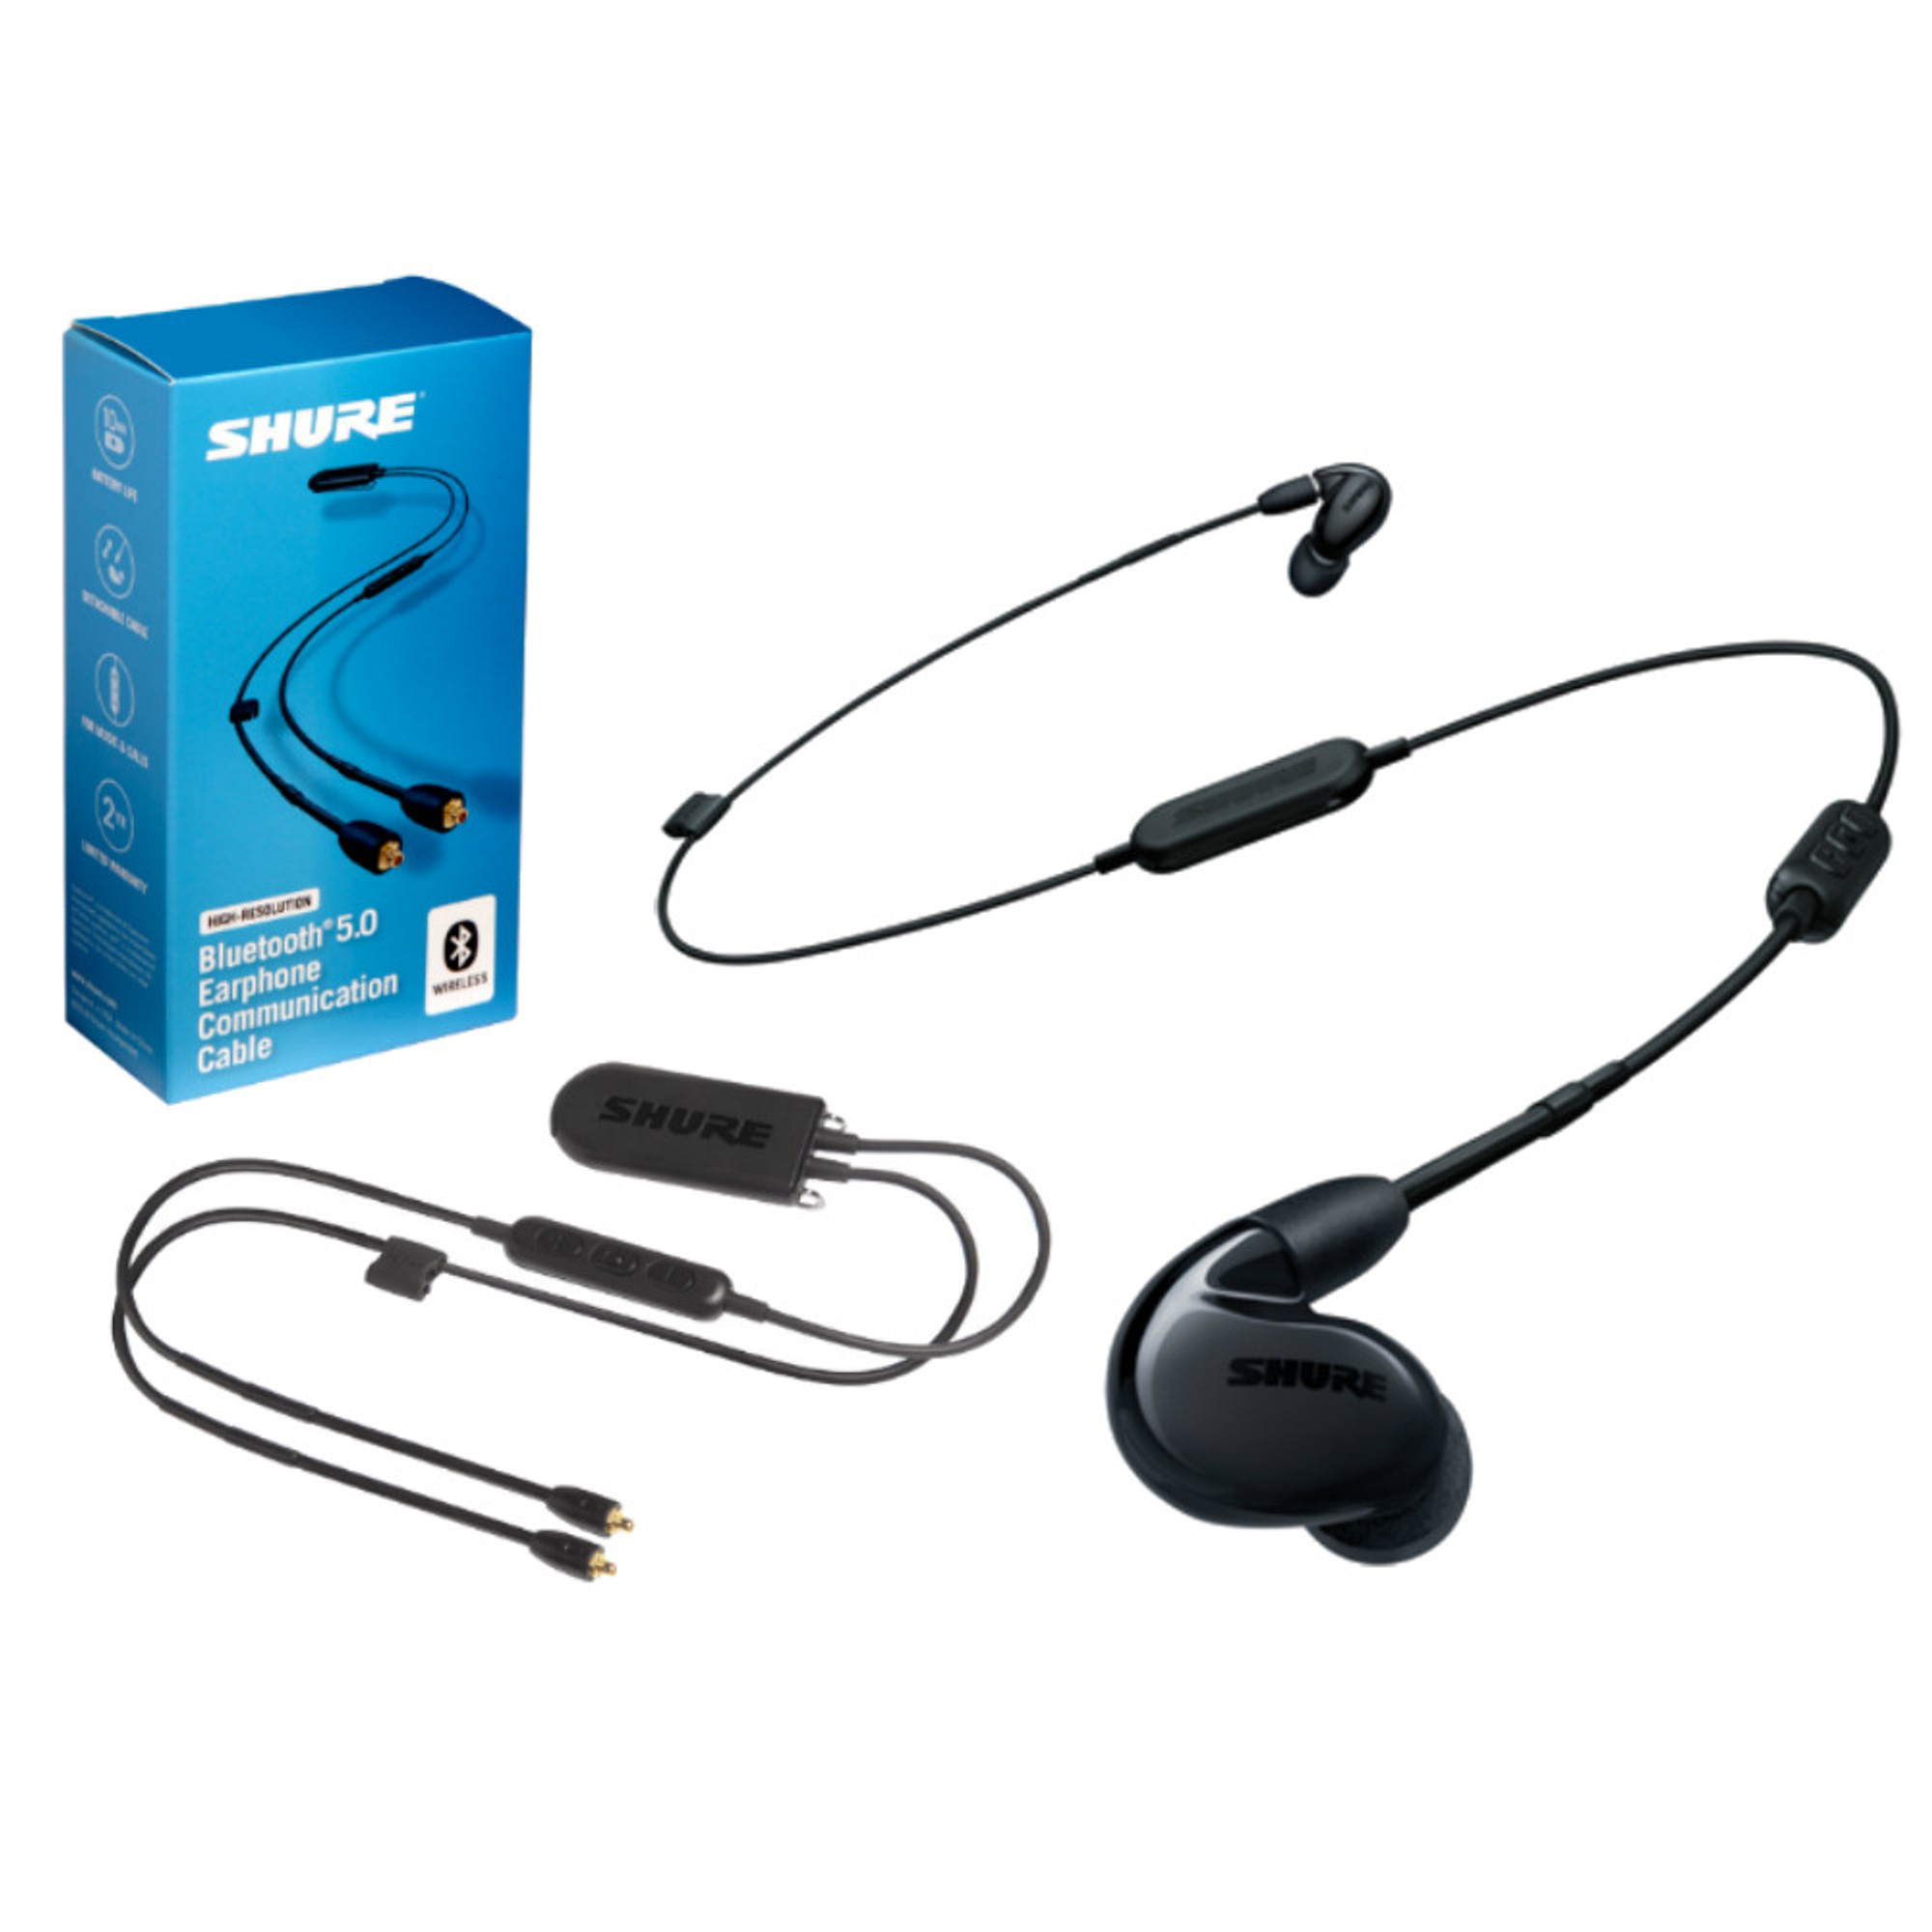 ba1ef4278bb Shure SE846 Wireless Earphones + RMCE-BT2 Bluetooth 5 Cable Bundle ...